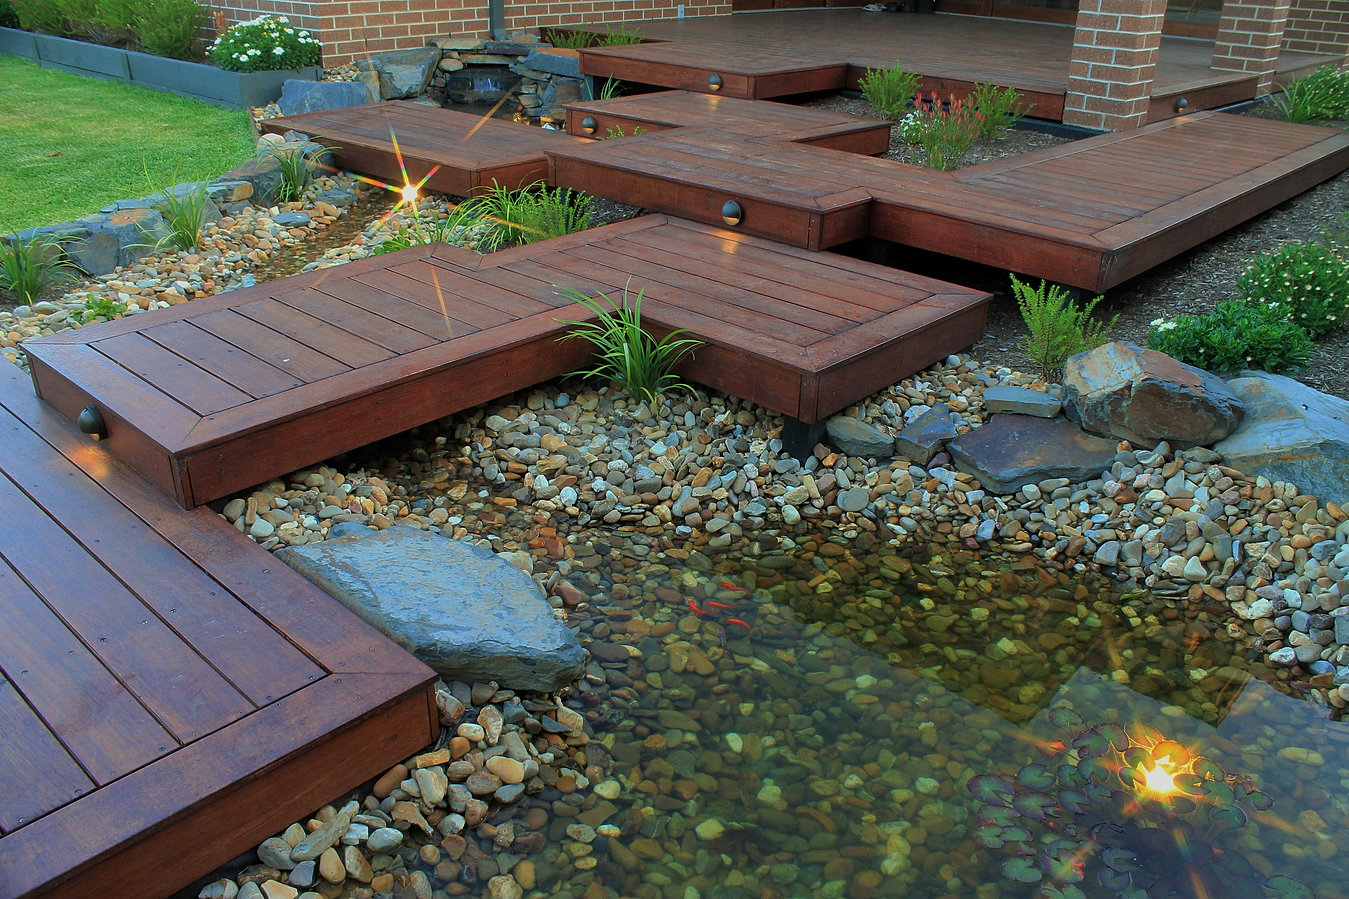 Landscaping melbourne garden design intrinsic landscapes for Garden designs melbourne